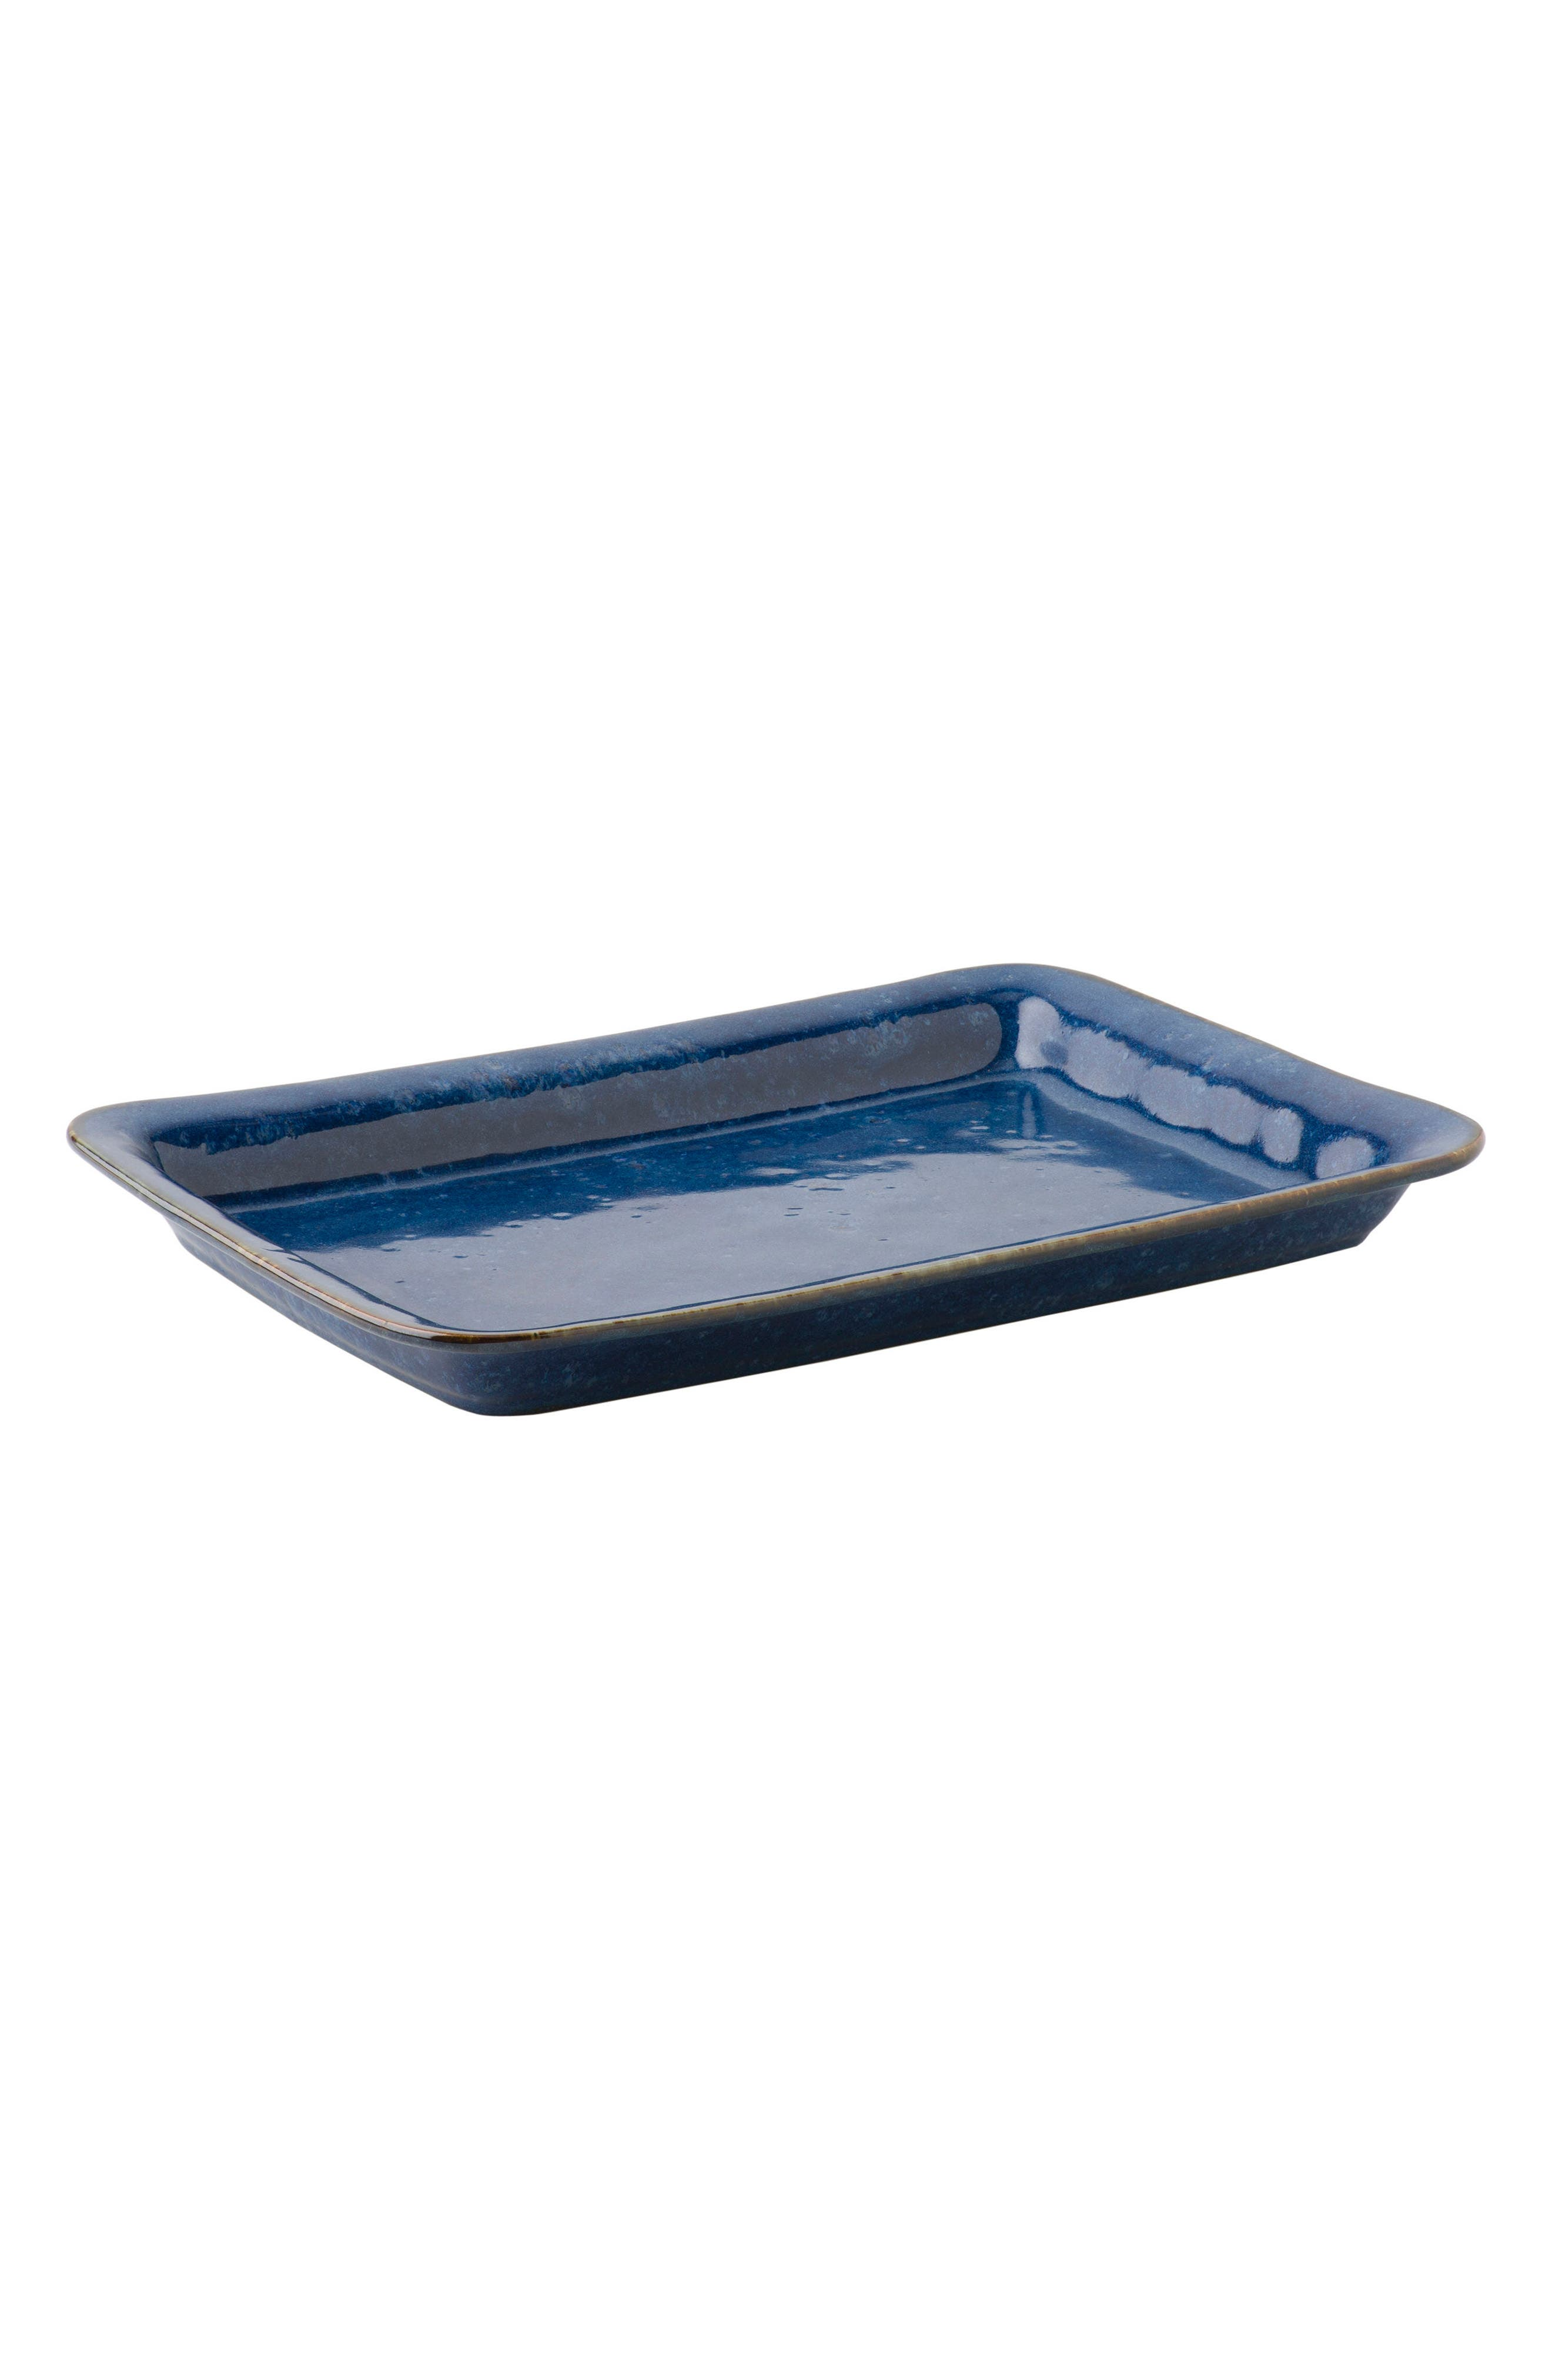 Juliska Puro Rectangular Ceramic Serving Tray